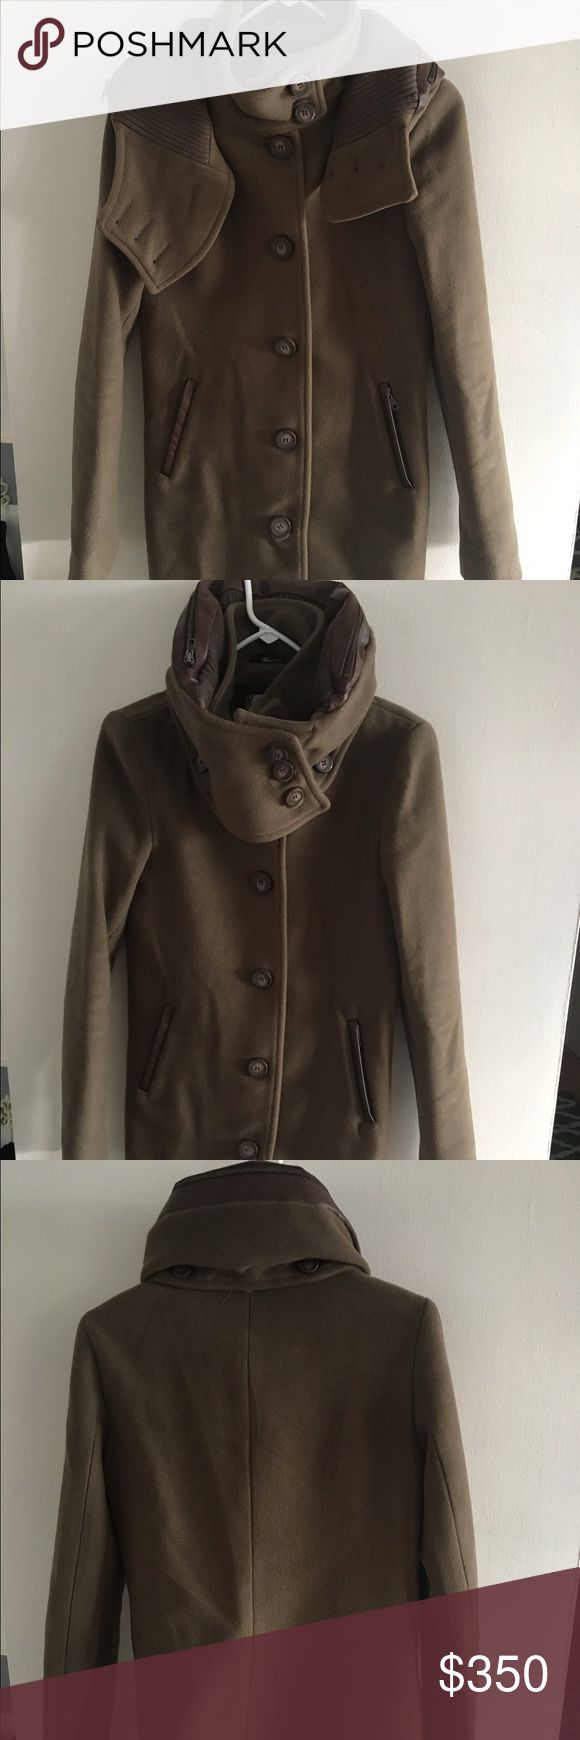 Mackage Tan Wool Jacket with Leather details RARE Funnel neck wool gorgeous tan Mackage jacket. It has leather detail around collar and on pockets with matching tan buttons. Hits me at mid thigh and I'm 5'3. Gorgeous buttery amazing Mackage jacket. The pictures truly don't do it justice. Mackage Jackets & Coats